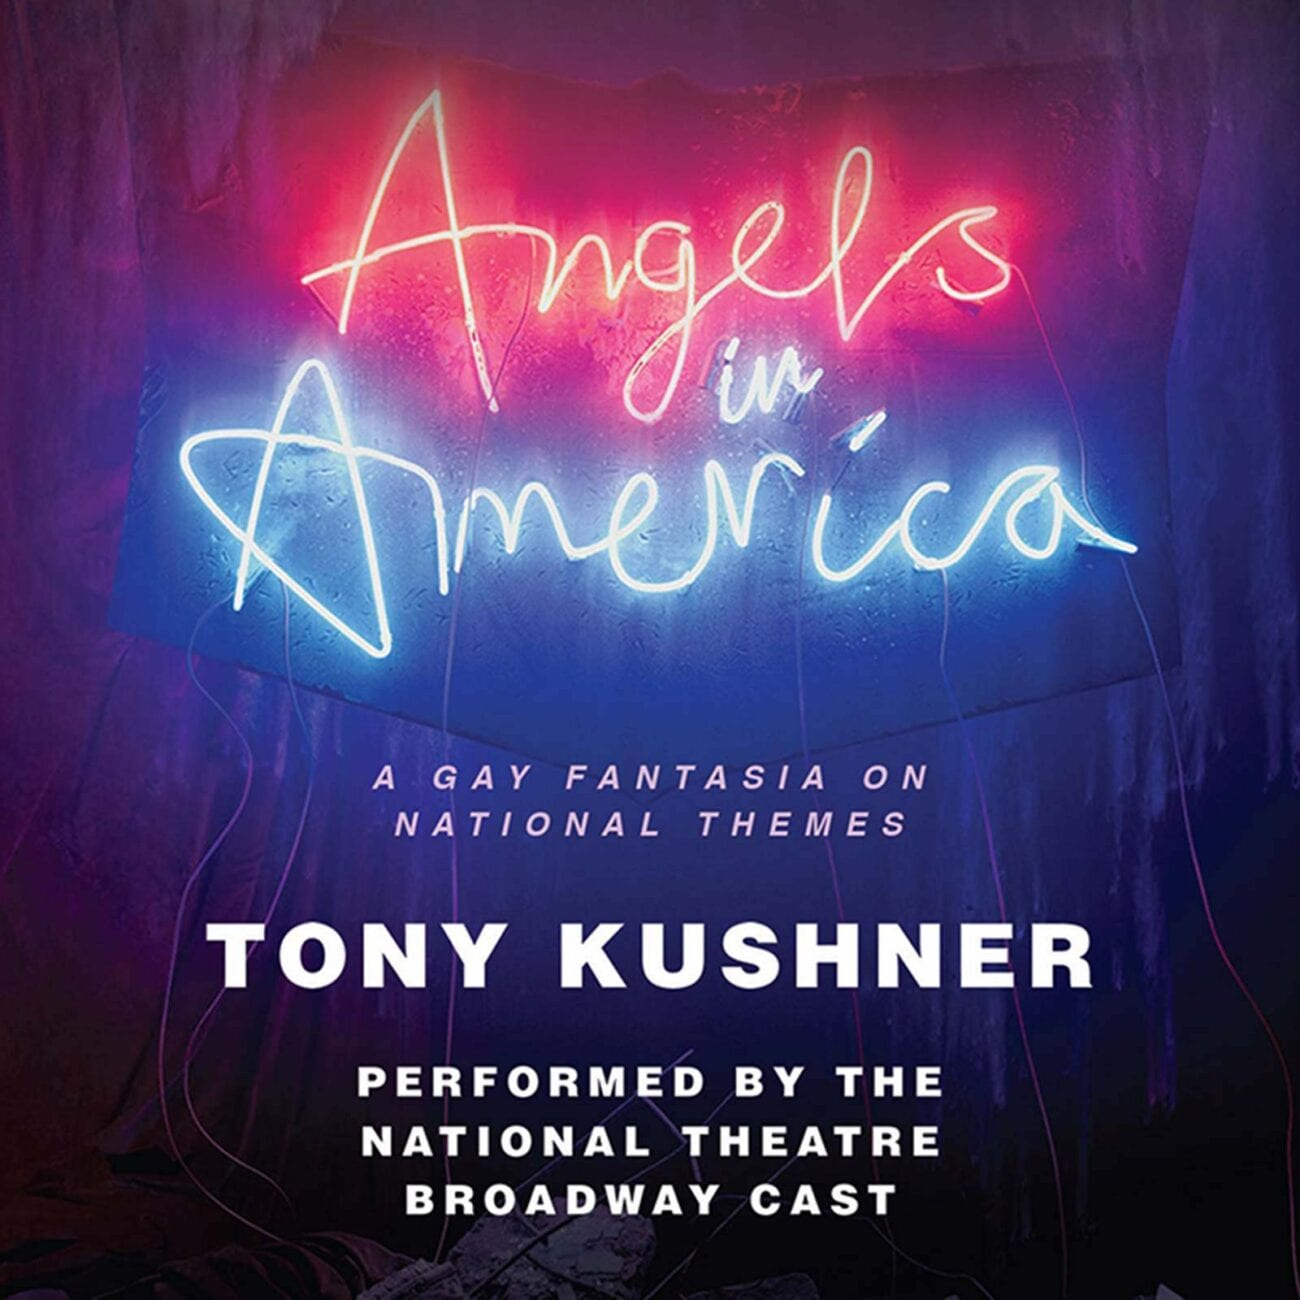 It's impossible to talk LGBTQ+ stories on Broadway without discussing 'Angels in America'. Here's our beginners guide.